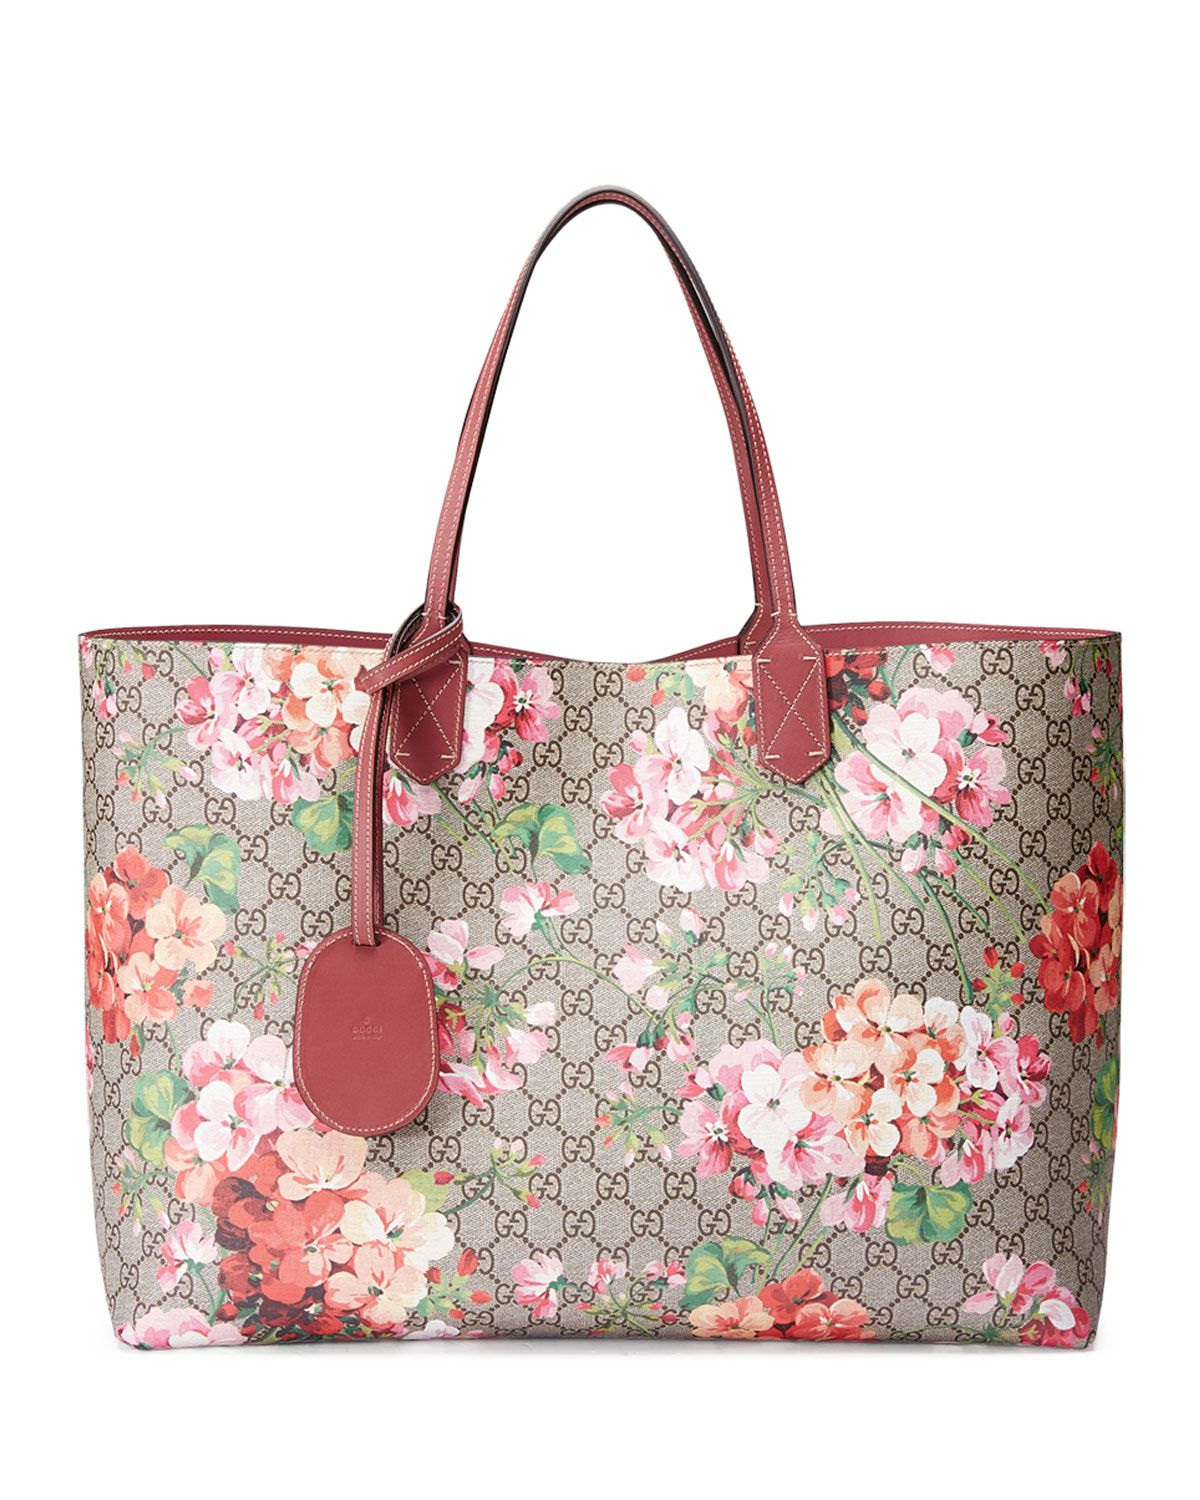 Gucci GG Blooms Large Reversible Leather Tote Bag Multicolor - Invoice template open office free gucci outlet online store authentic